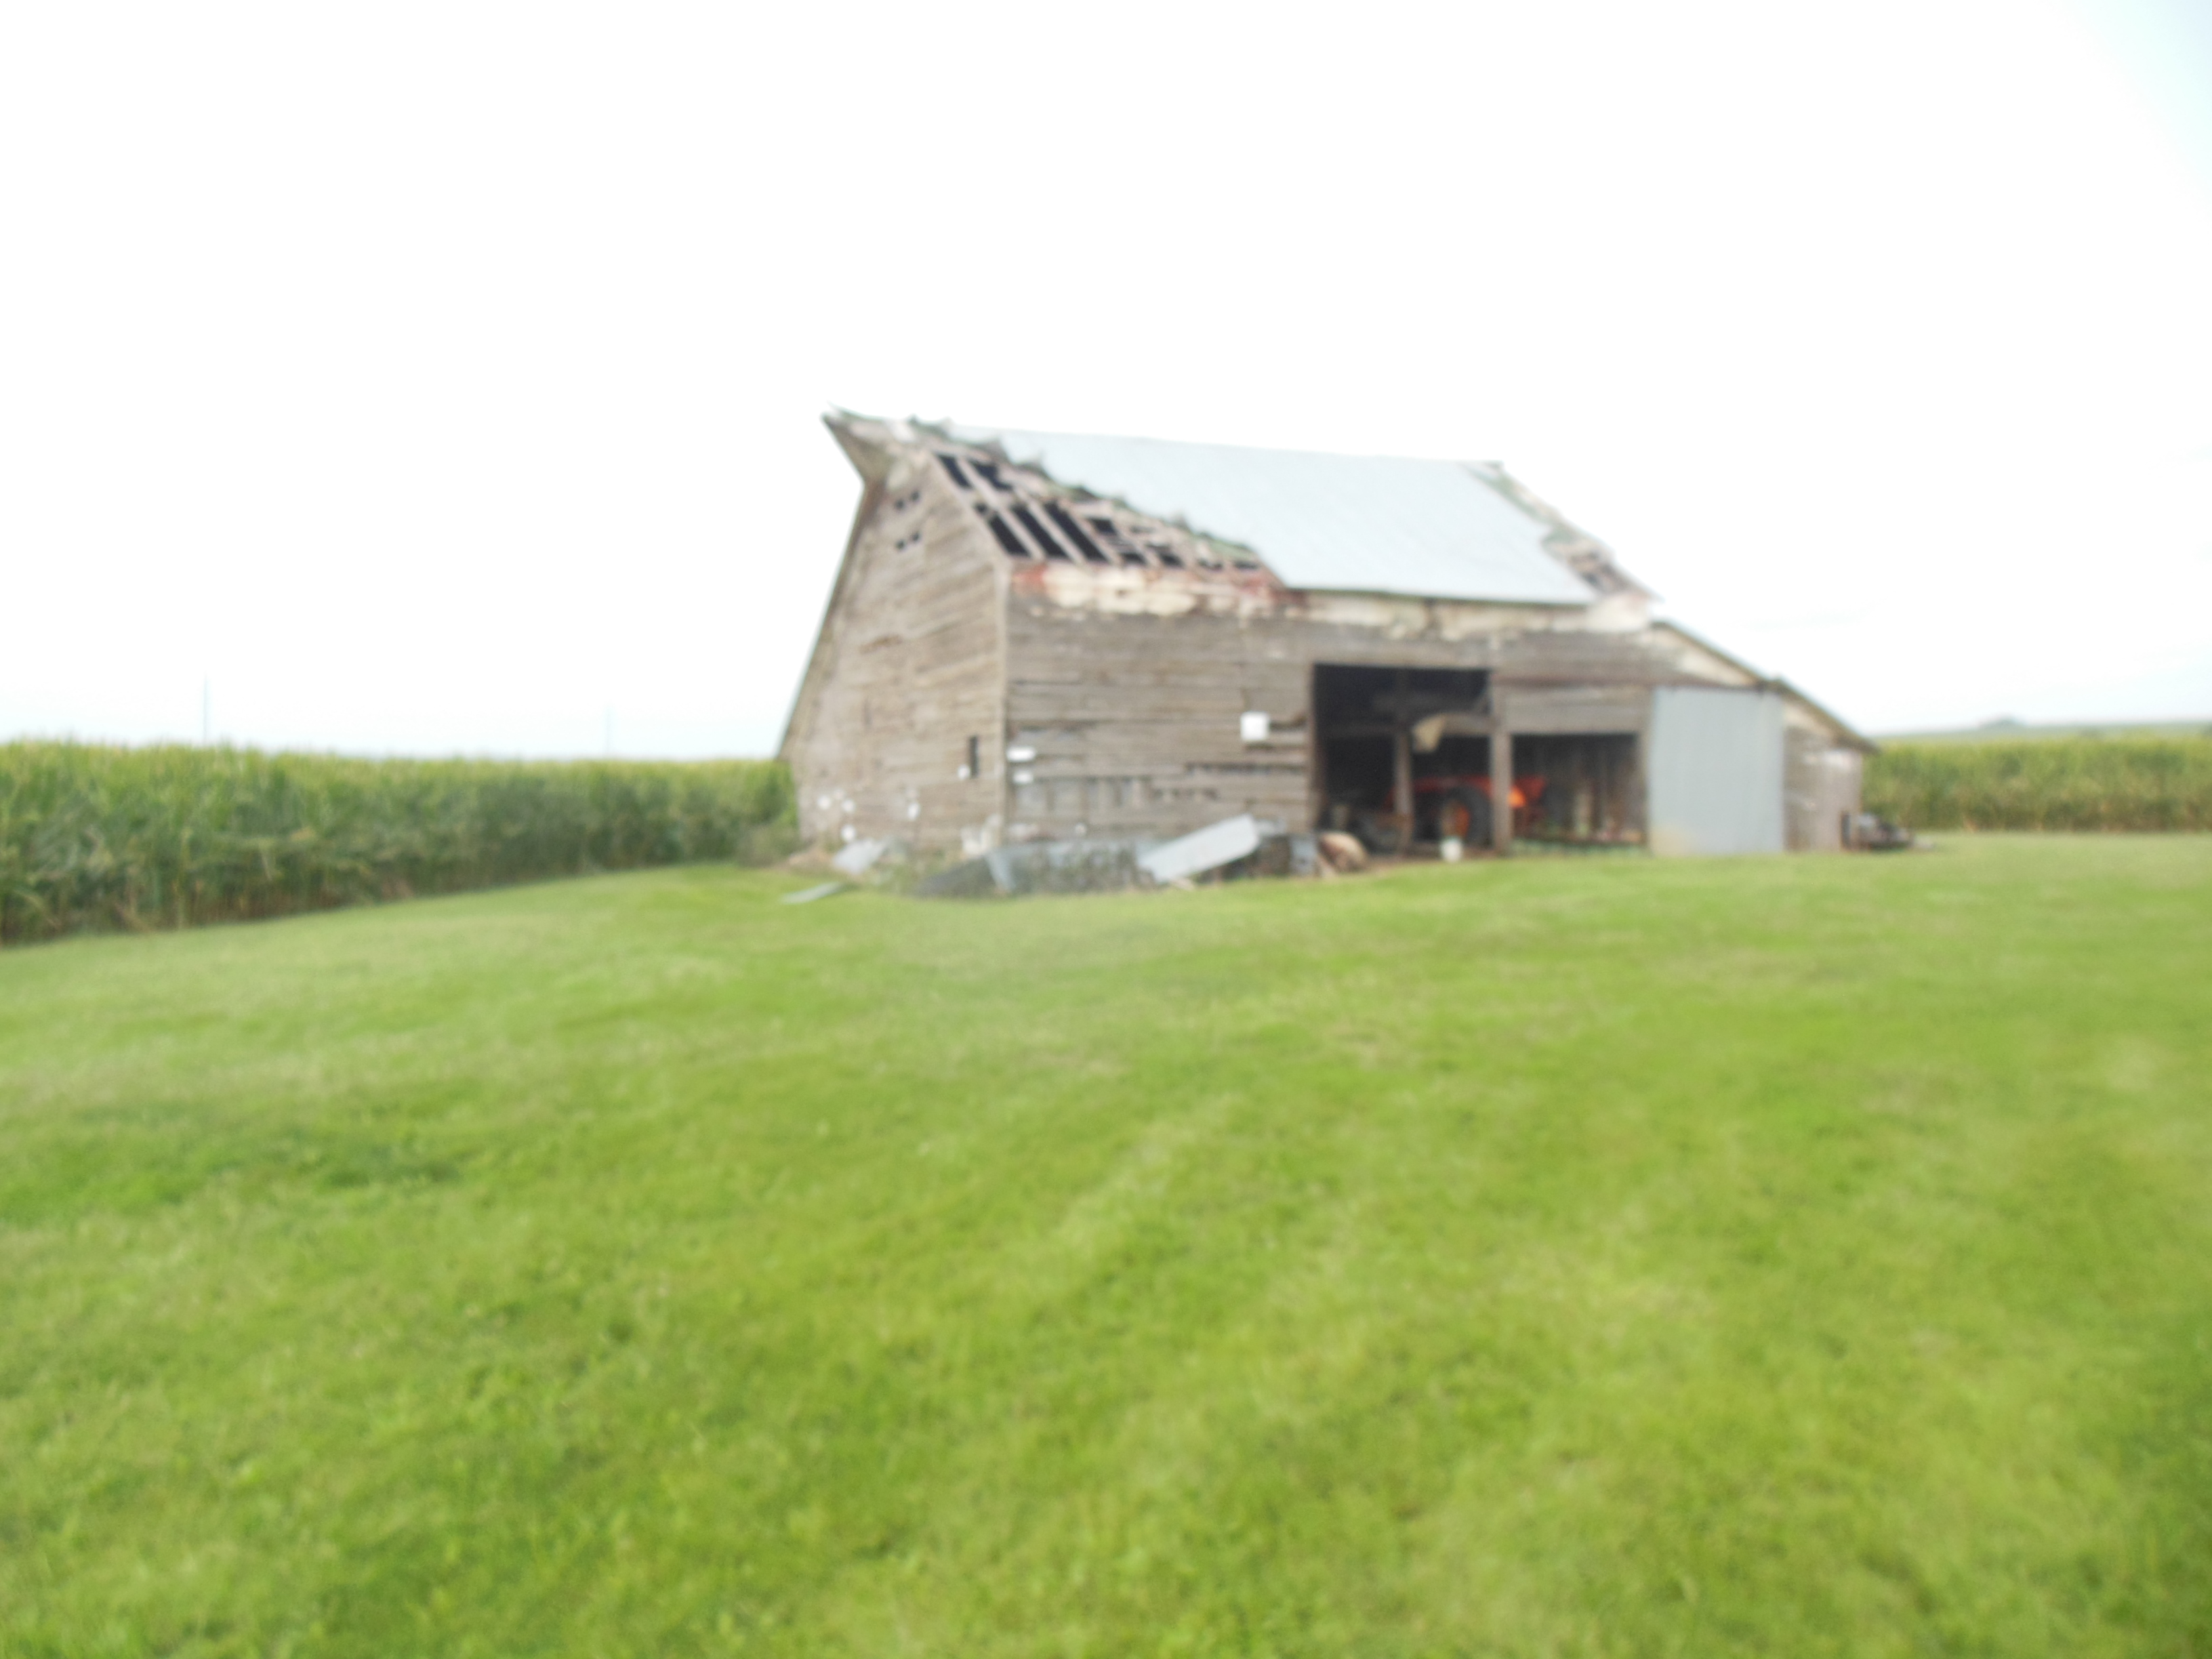 Barn to be torn down